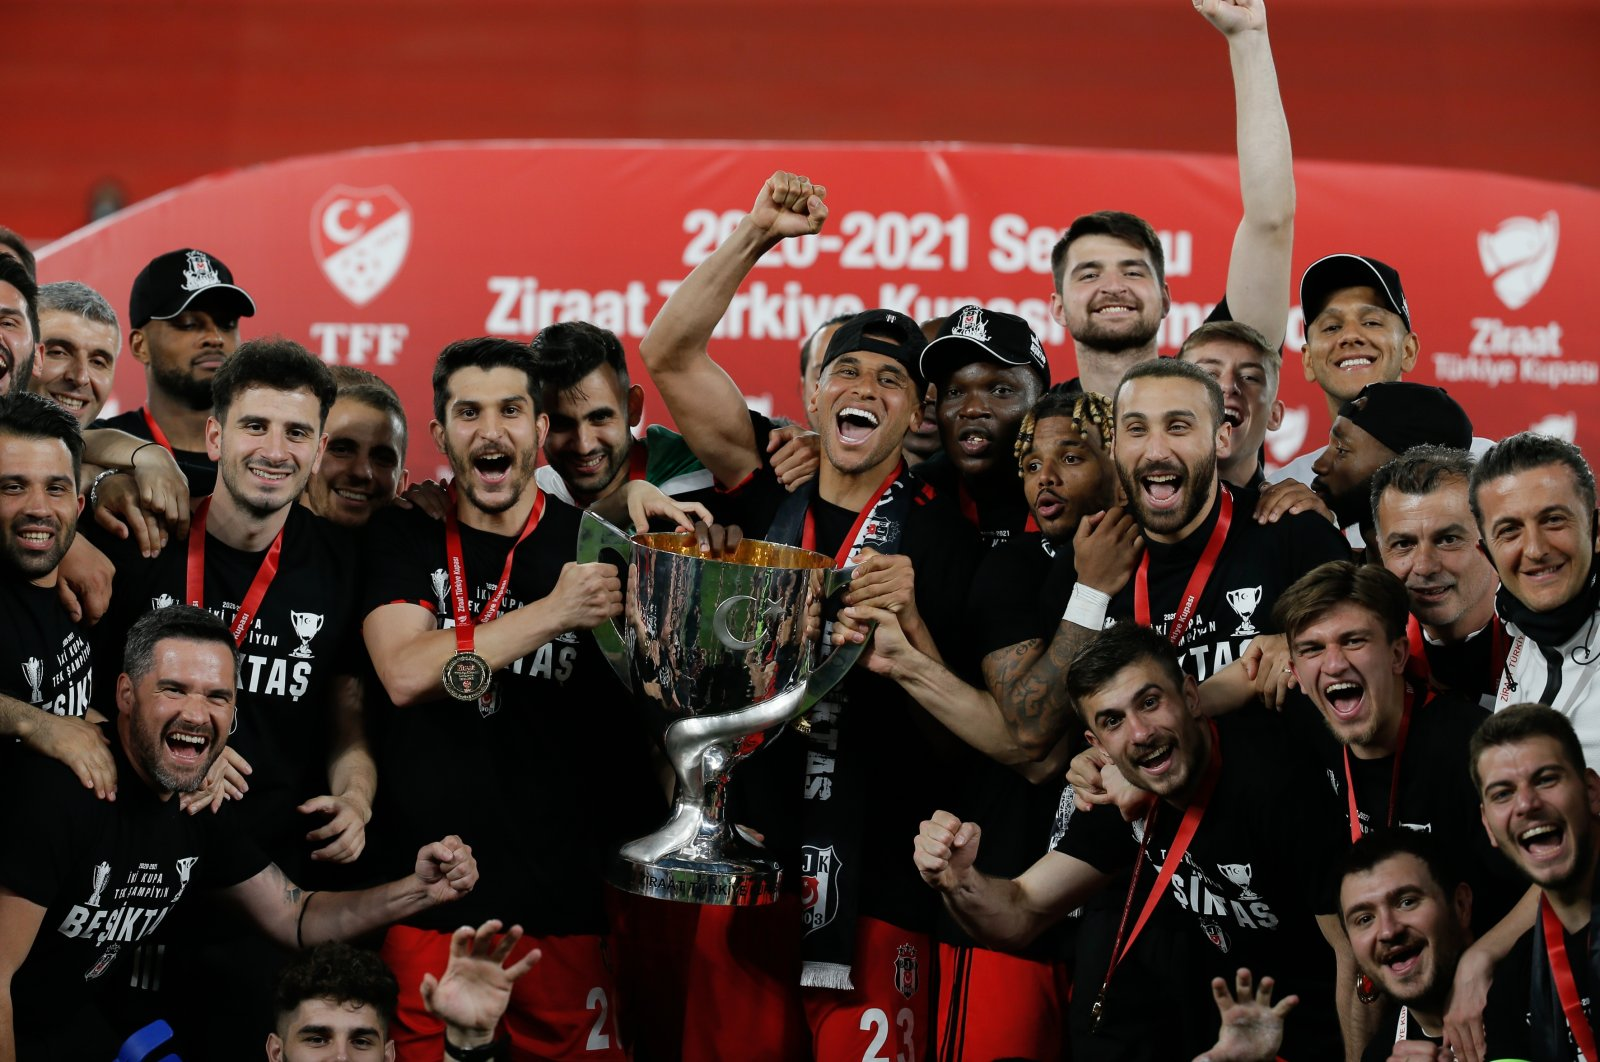 Beşiktaş players and staff celebrate with the Ziraat Turkish Cup after a 2-0 victory against Antalyaspor at Gürsel Aksel Stadium, Izmir, southwestern Turkey, May 18, 2021 (AA Photo)